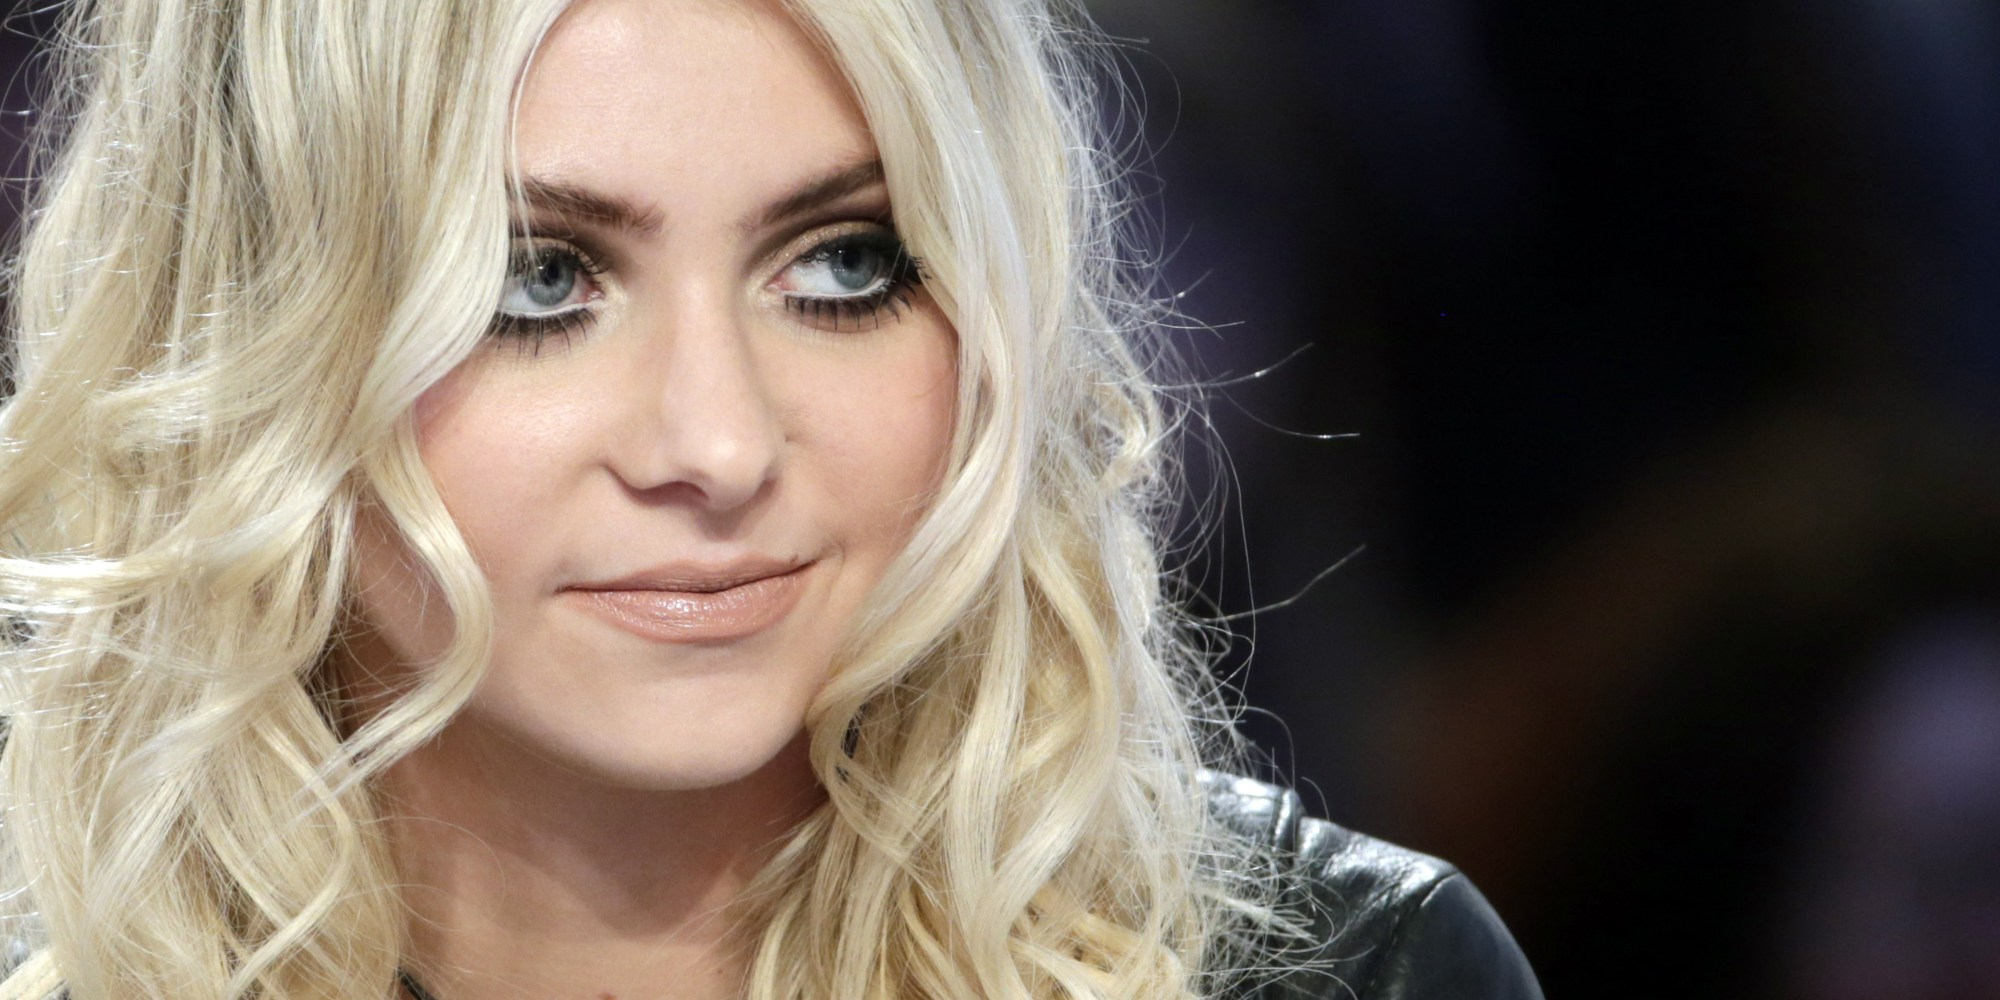 Taylor Momsen filled with Bouts of Tears, While Paying Tribute to Chris Cornell